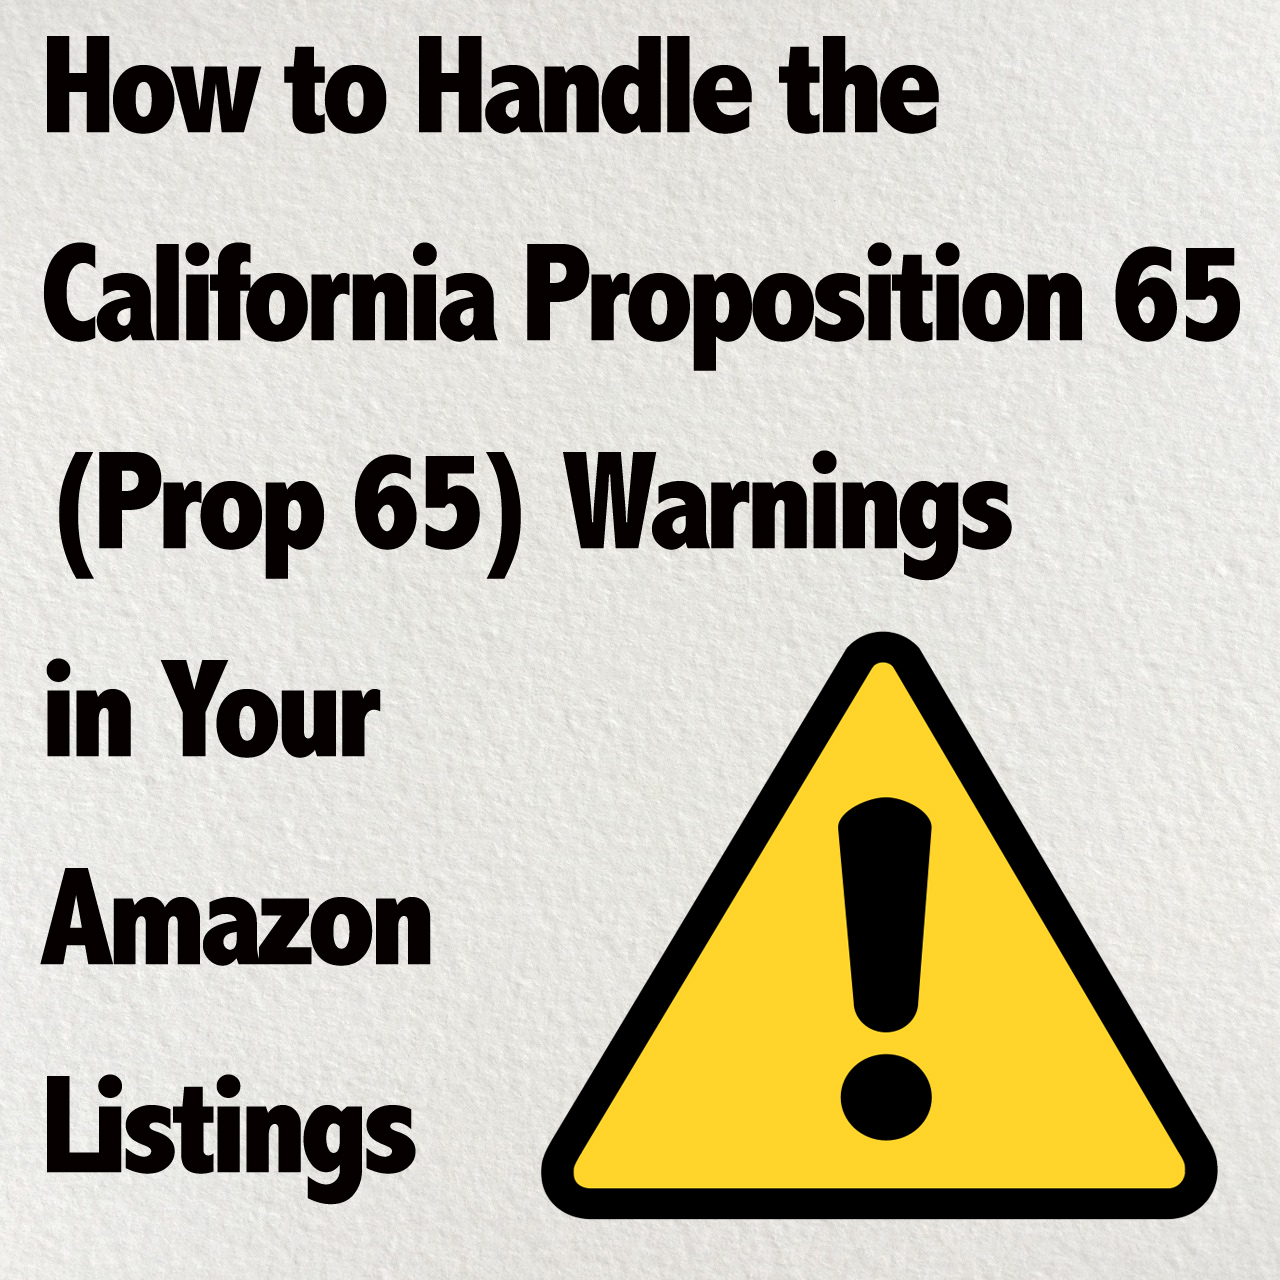 How To Handle California Proposition 65 (Prop 65) Warning